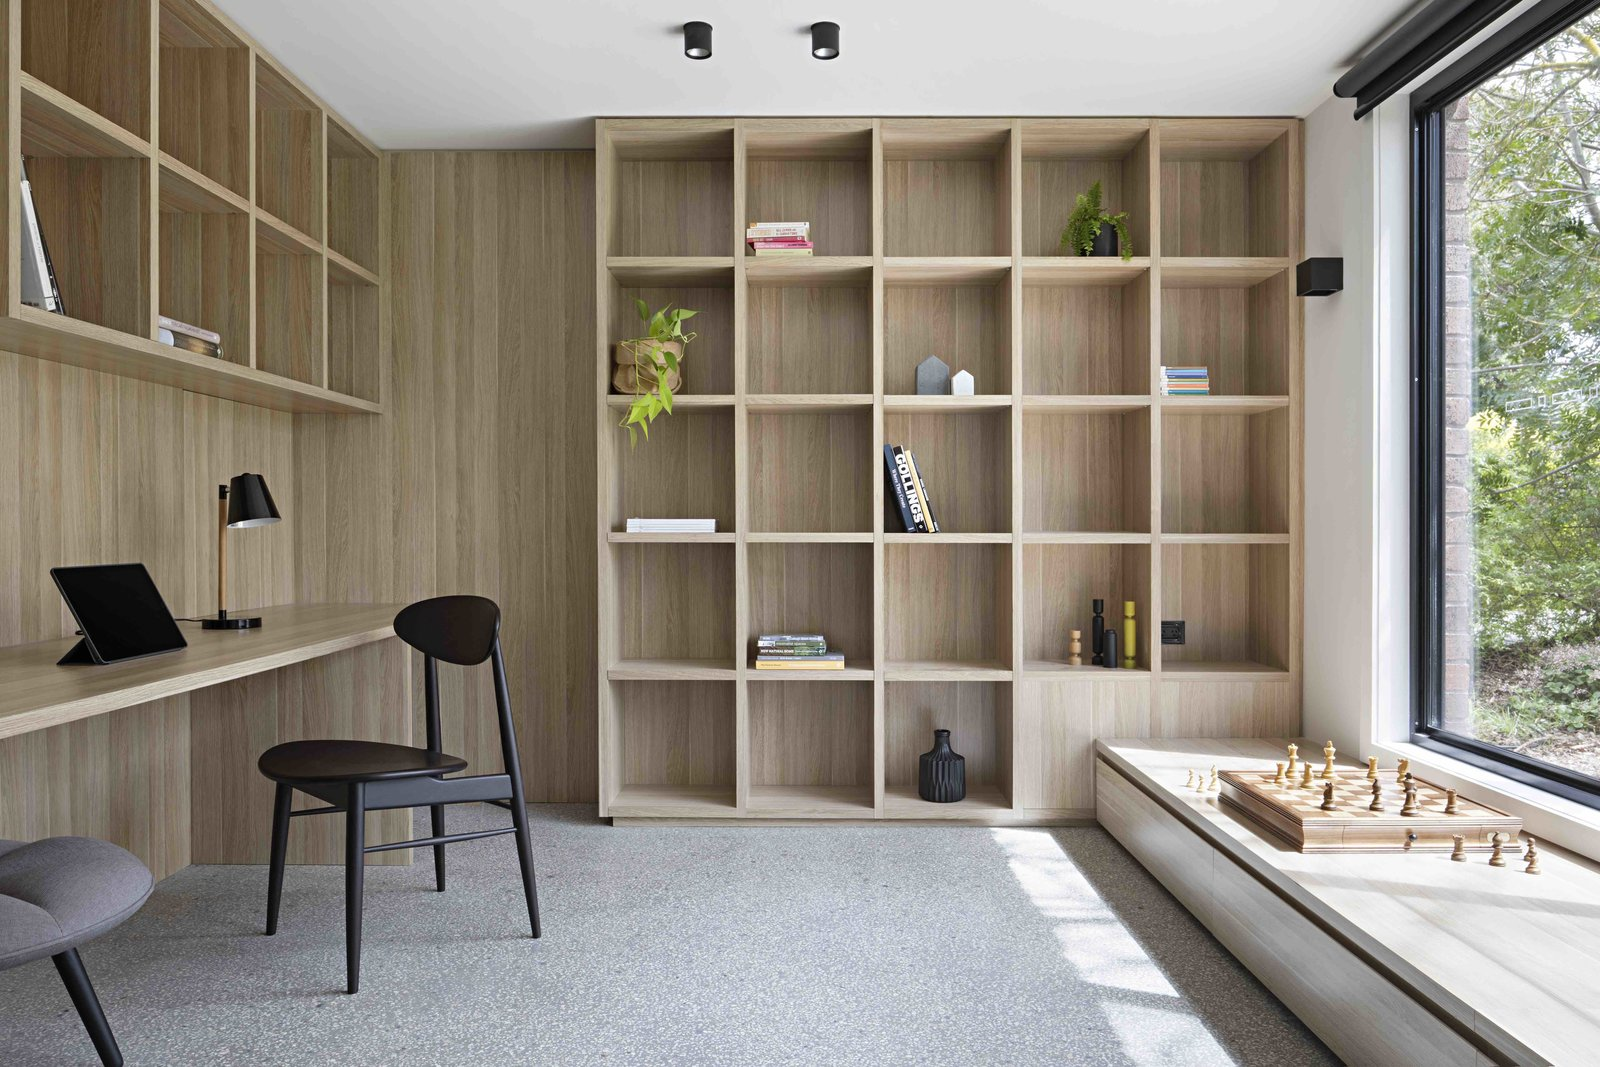 Office, Study, Library, Chair, Bookcase, Lamps, Shelves, Storage, and Desk  Best Office Lamps Library Photos from A Remodel Turns a Dark and Choppy House in Melbourne Into a Bright, Flexible Family Home